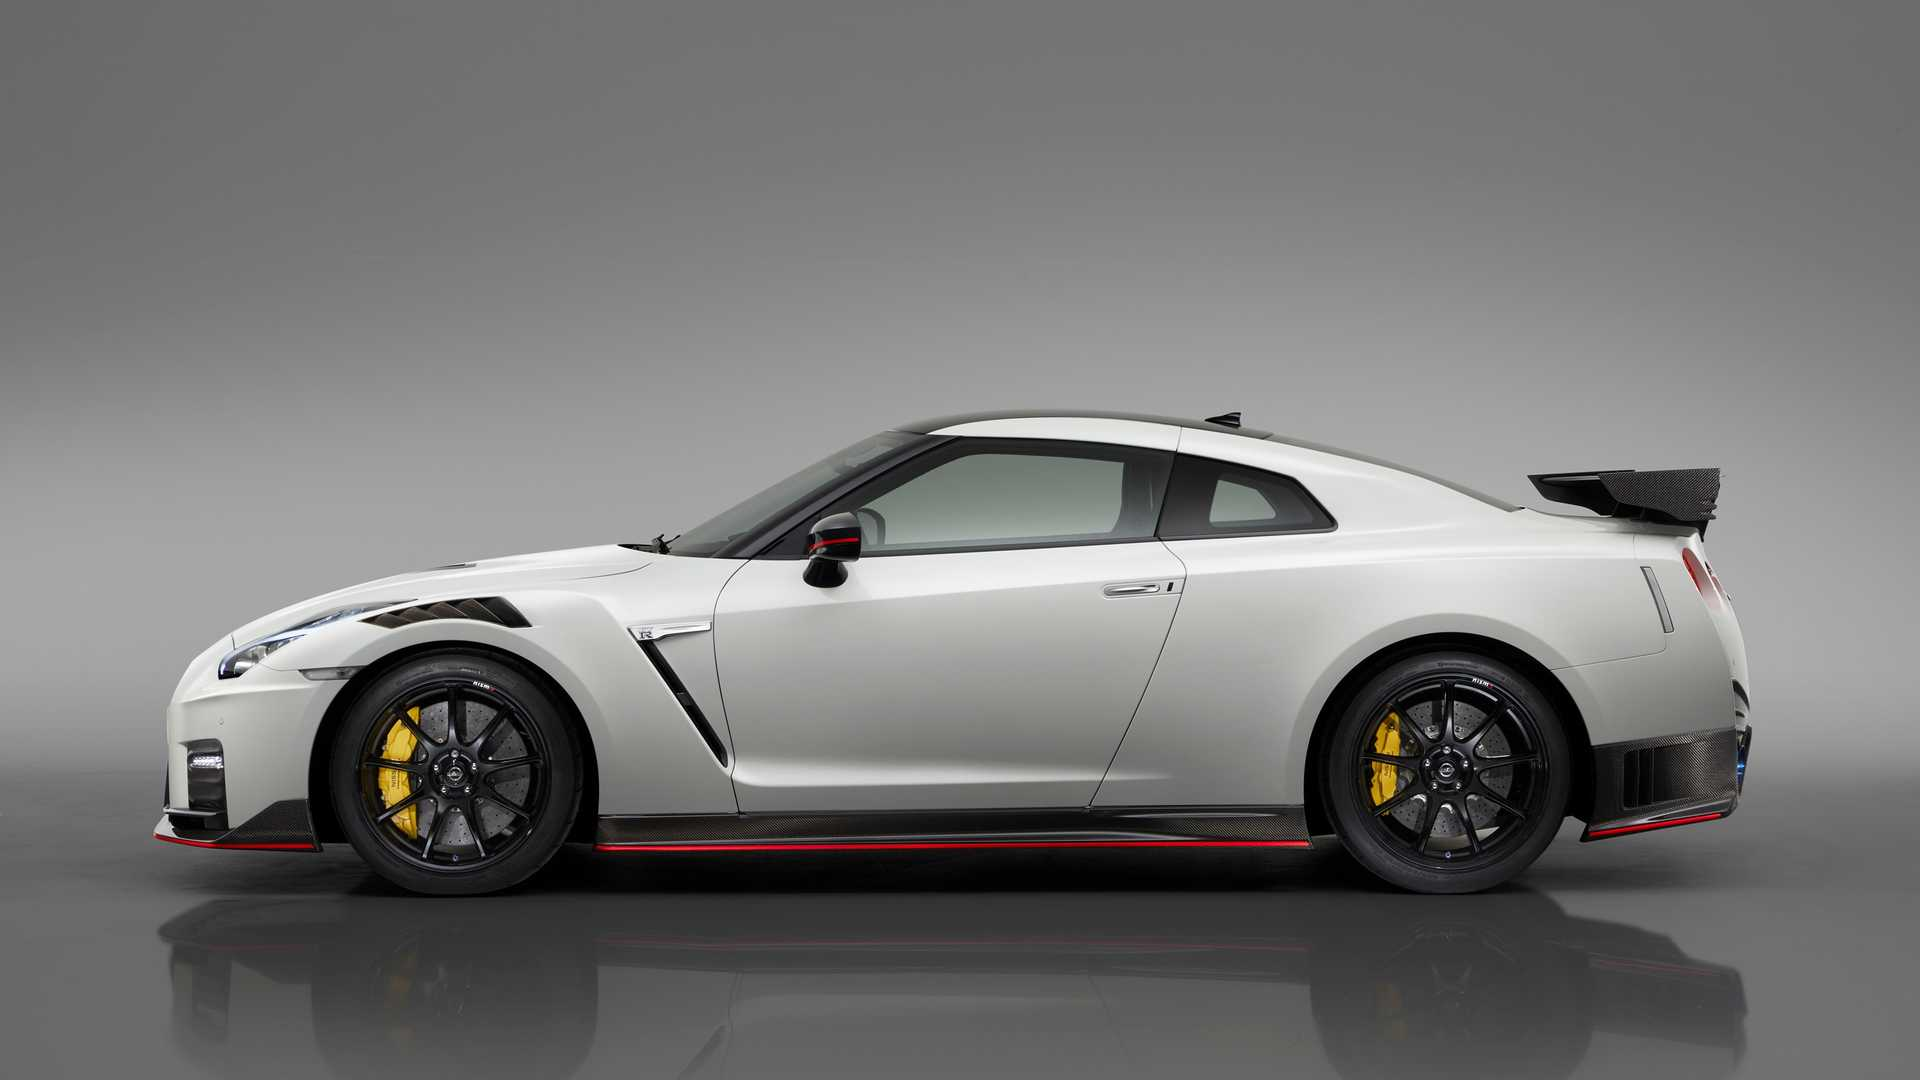 2020 Nissan GT-R available to order from just under £84,000